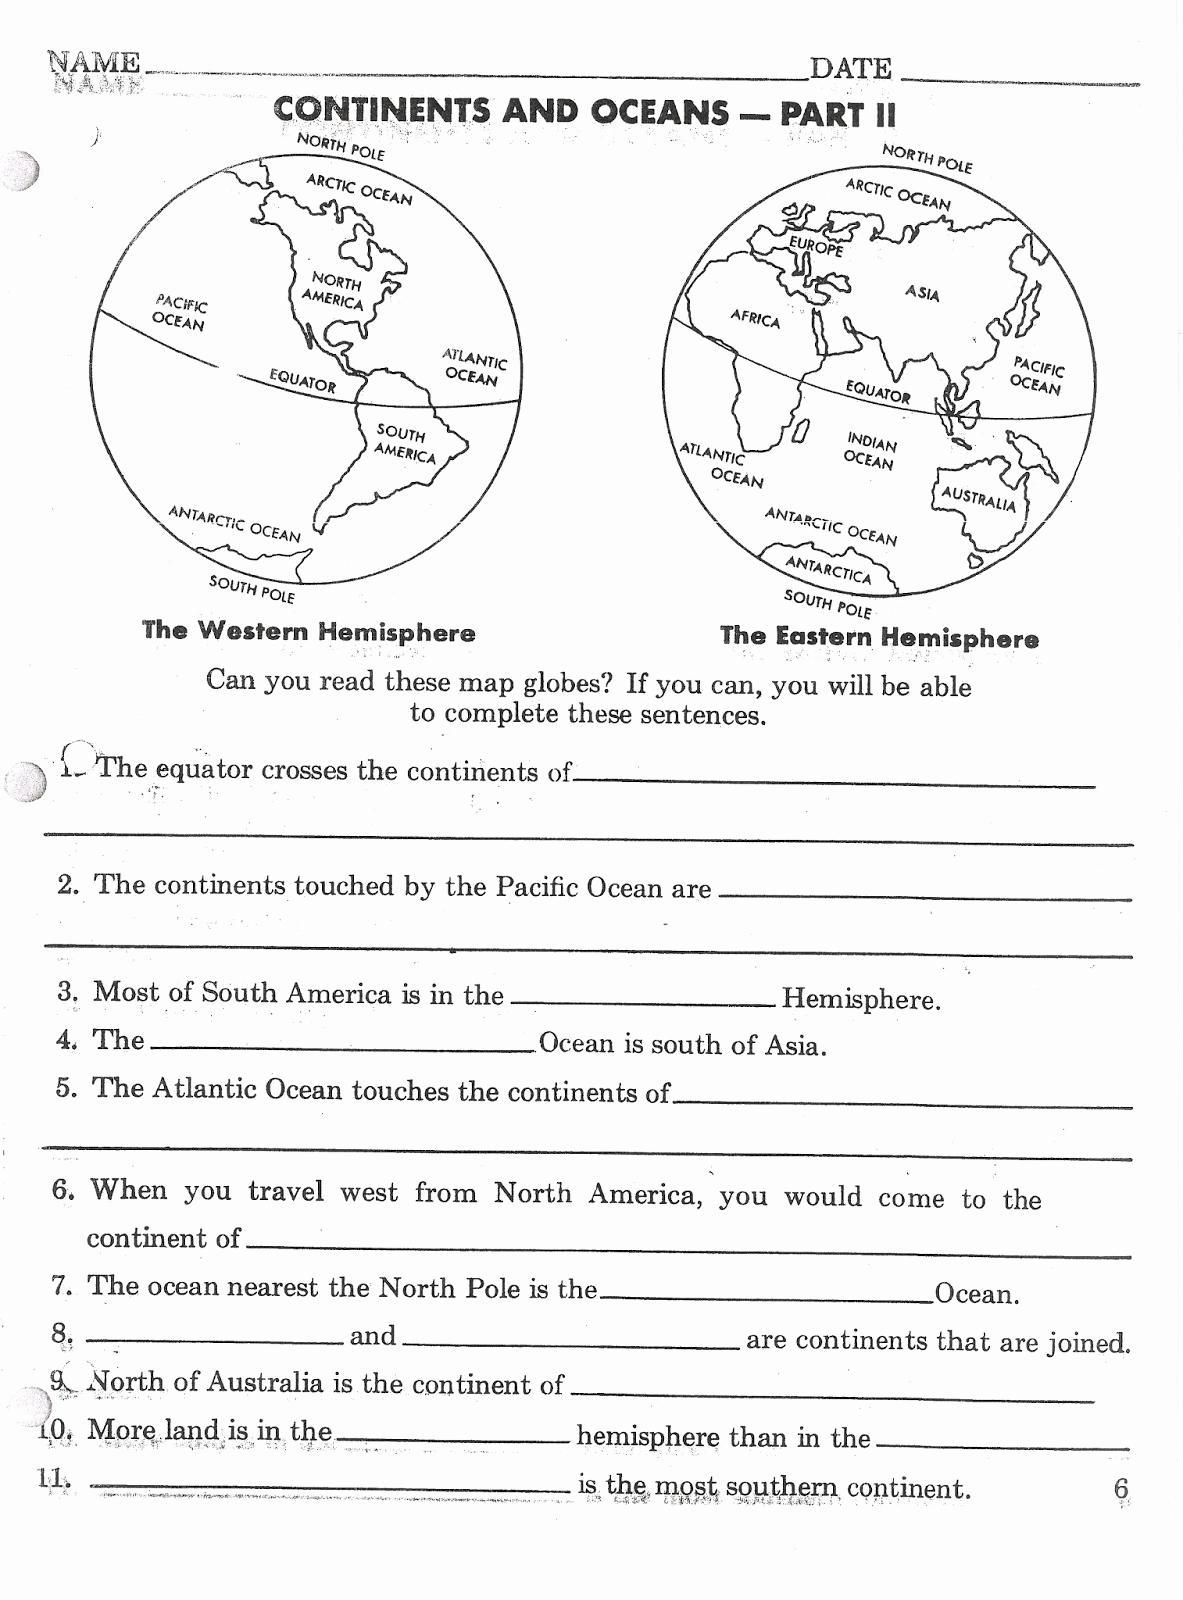 Continents and Oceans Worksheet Printable Awesome Mr Stanton S social Stu S September 2013